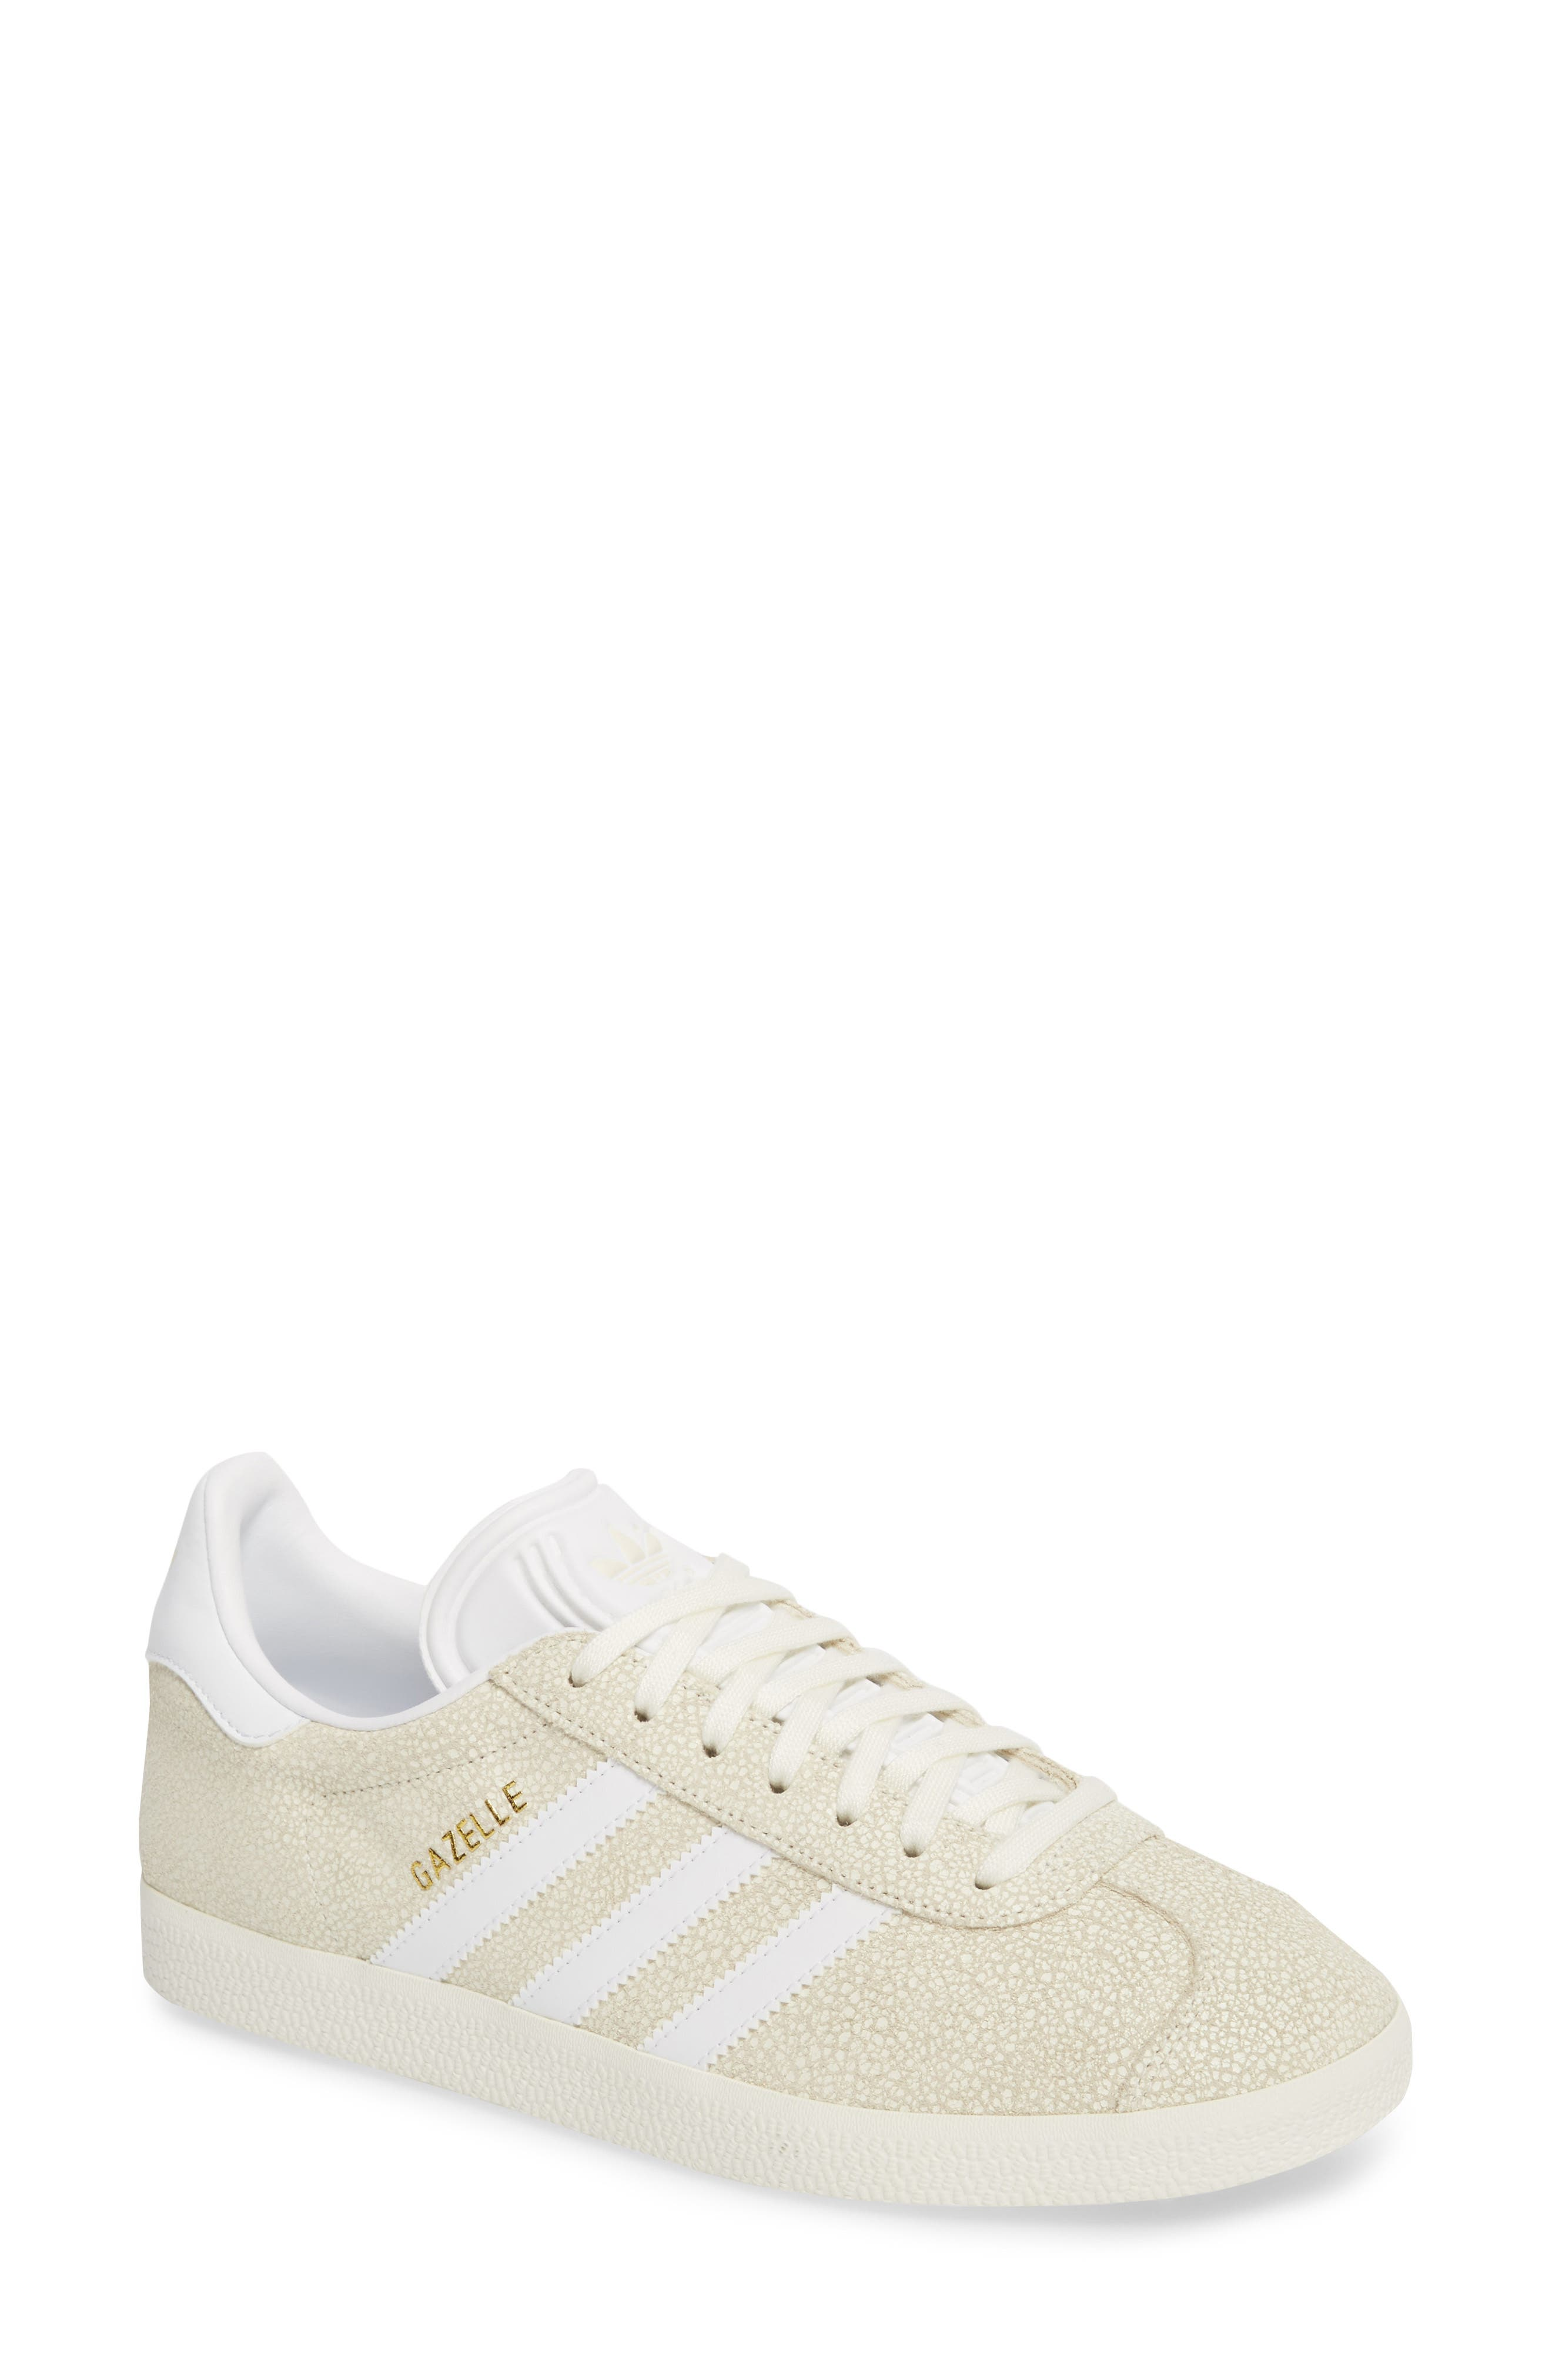 Gazelle Sneaker,                         Main,                         color, Off White/ White/ Off White